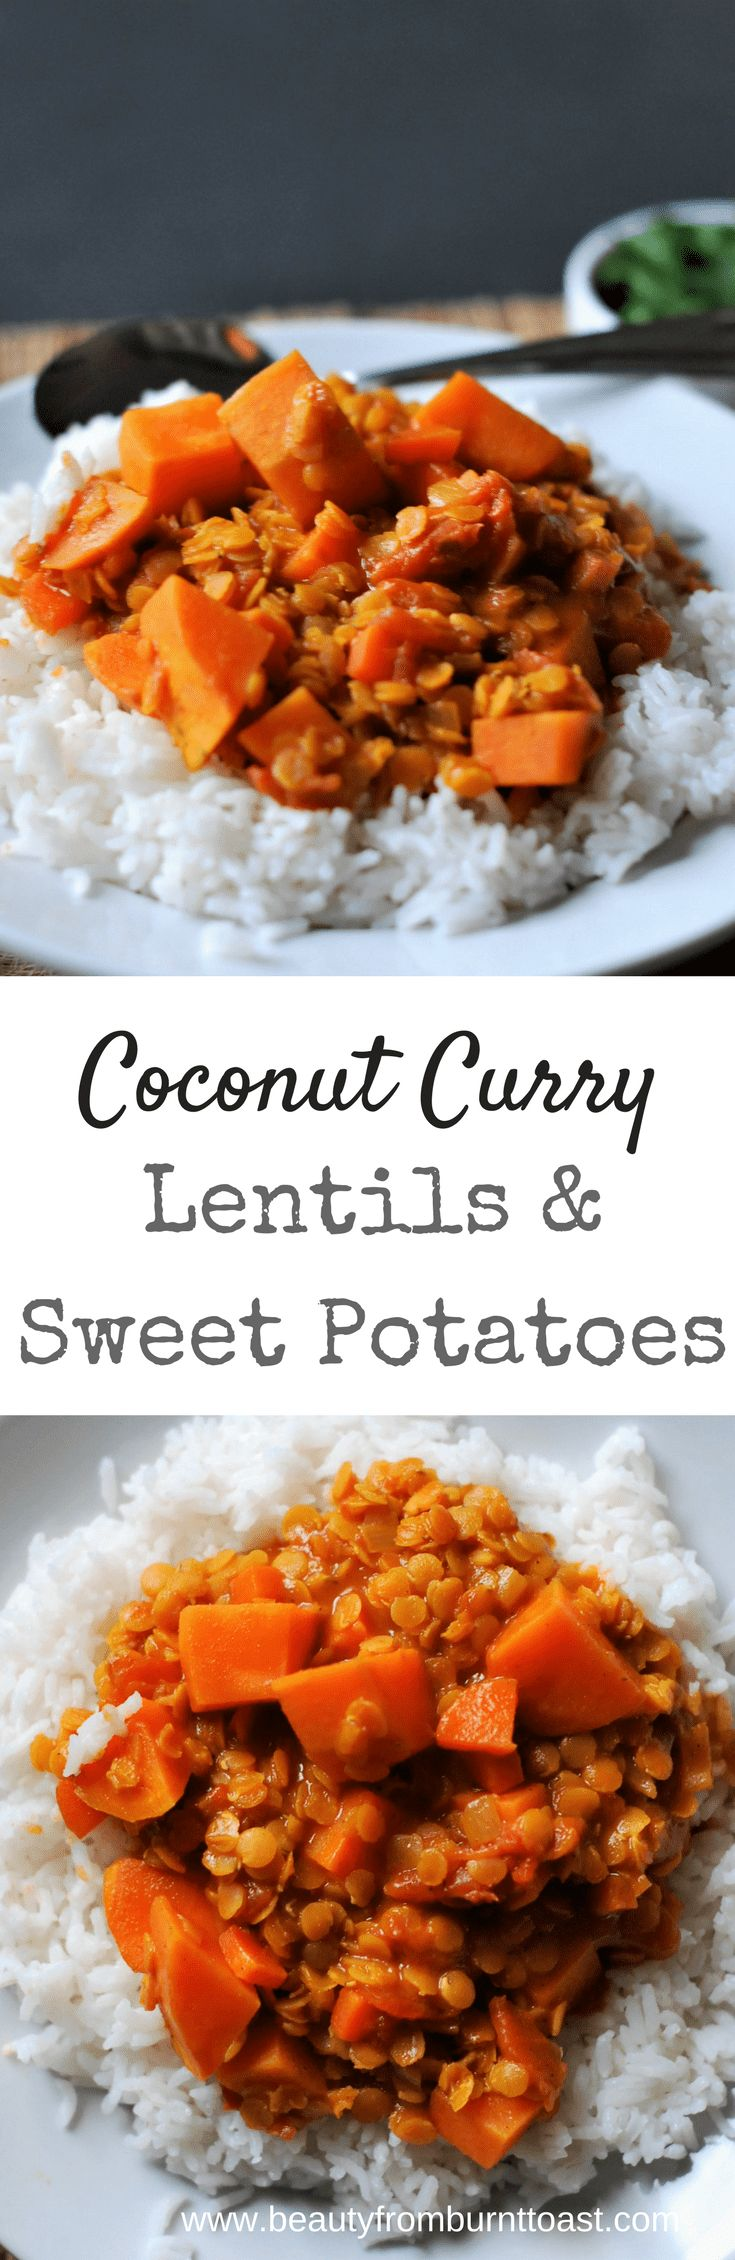 This creamy coconut curry lentil dish is perfect for lunch or dinner. Thick and satisfying, this meal can easily be customized to your liking by adding vegetables or adjusting spices. Learn to love Indian food. It's warming, delicious, and soul-filling.